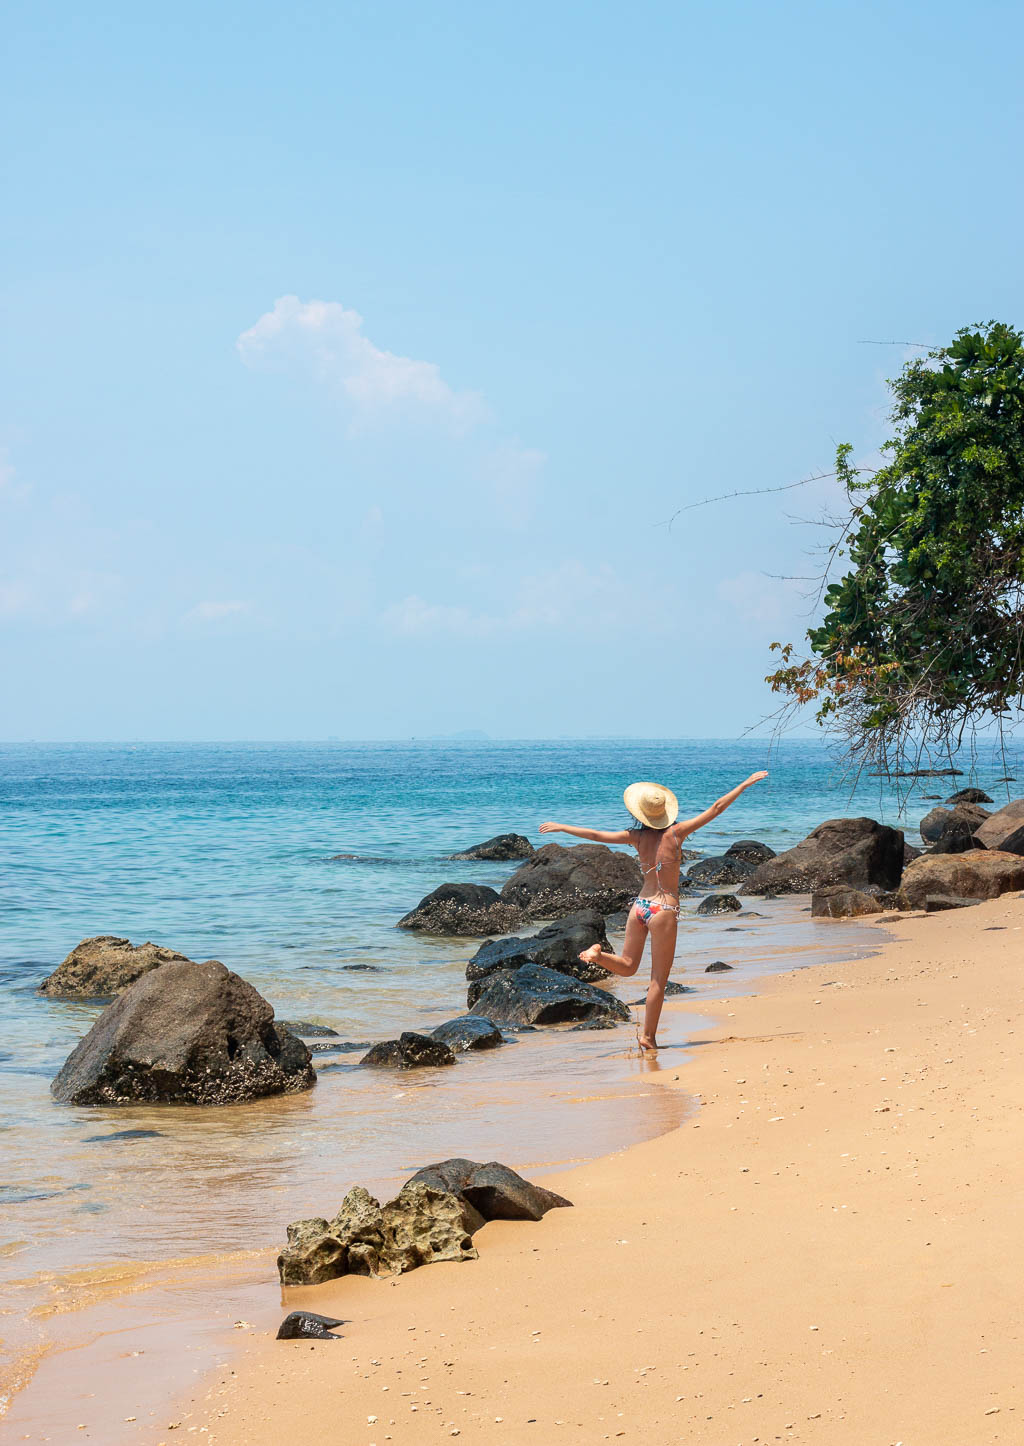 The beaches of the Perhentian Islands in Malaysia.